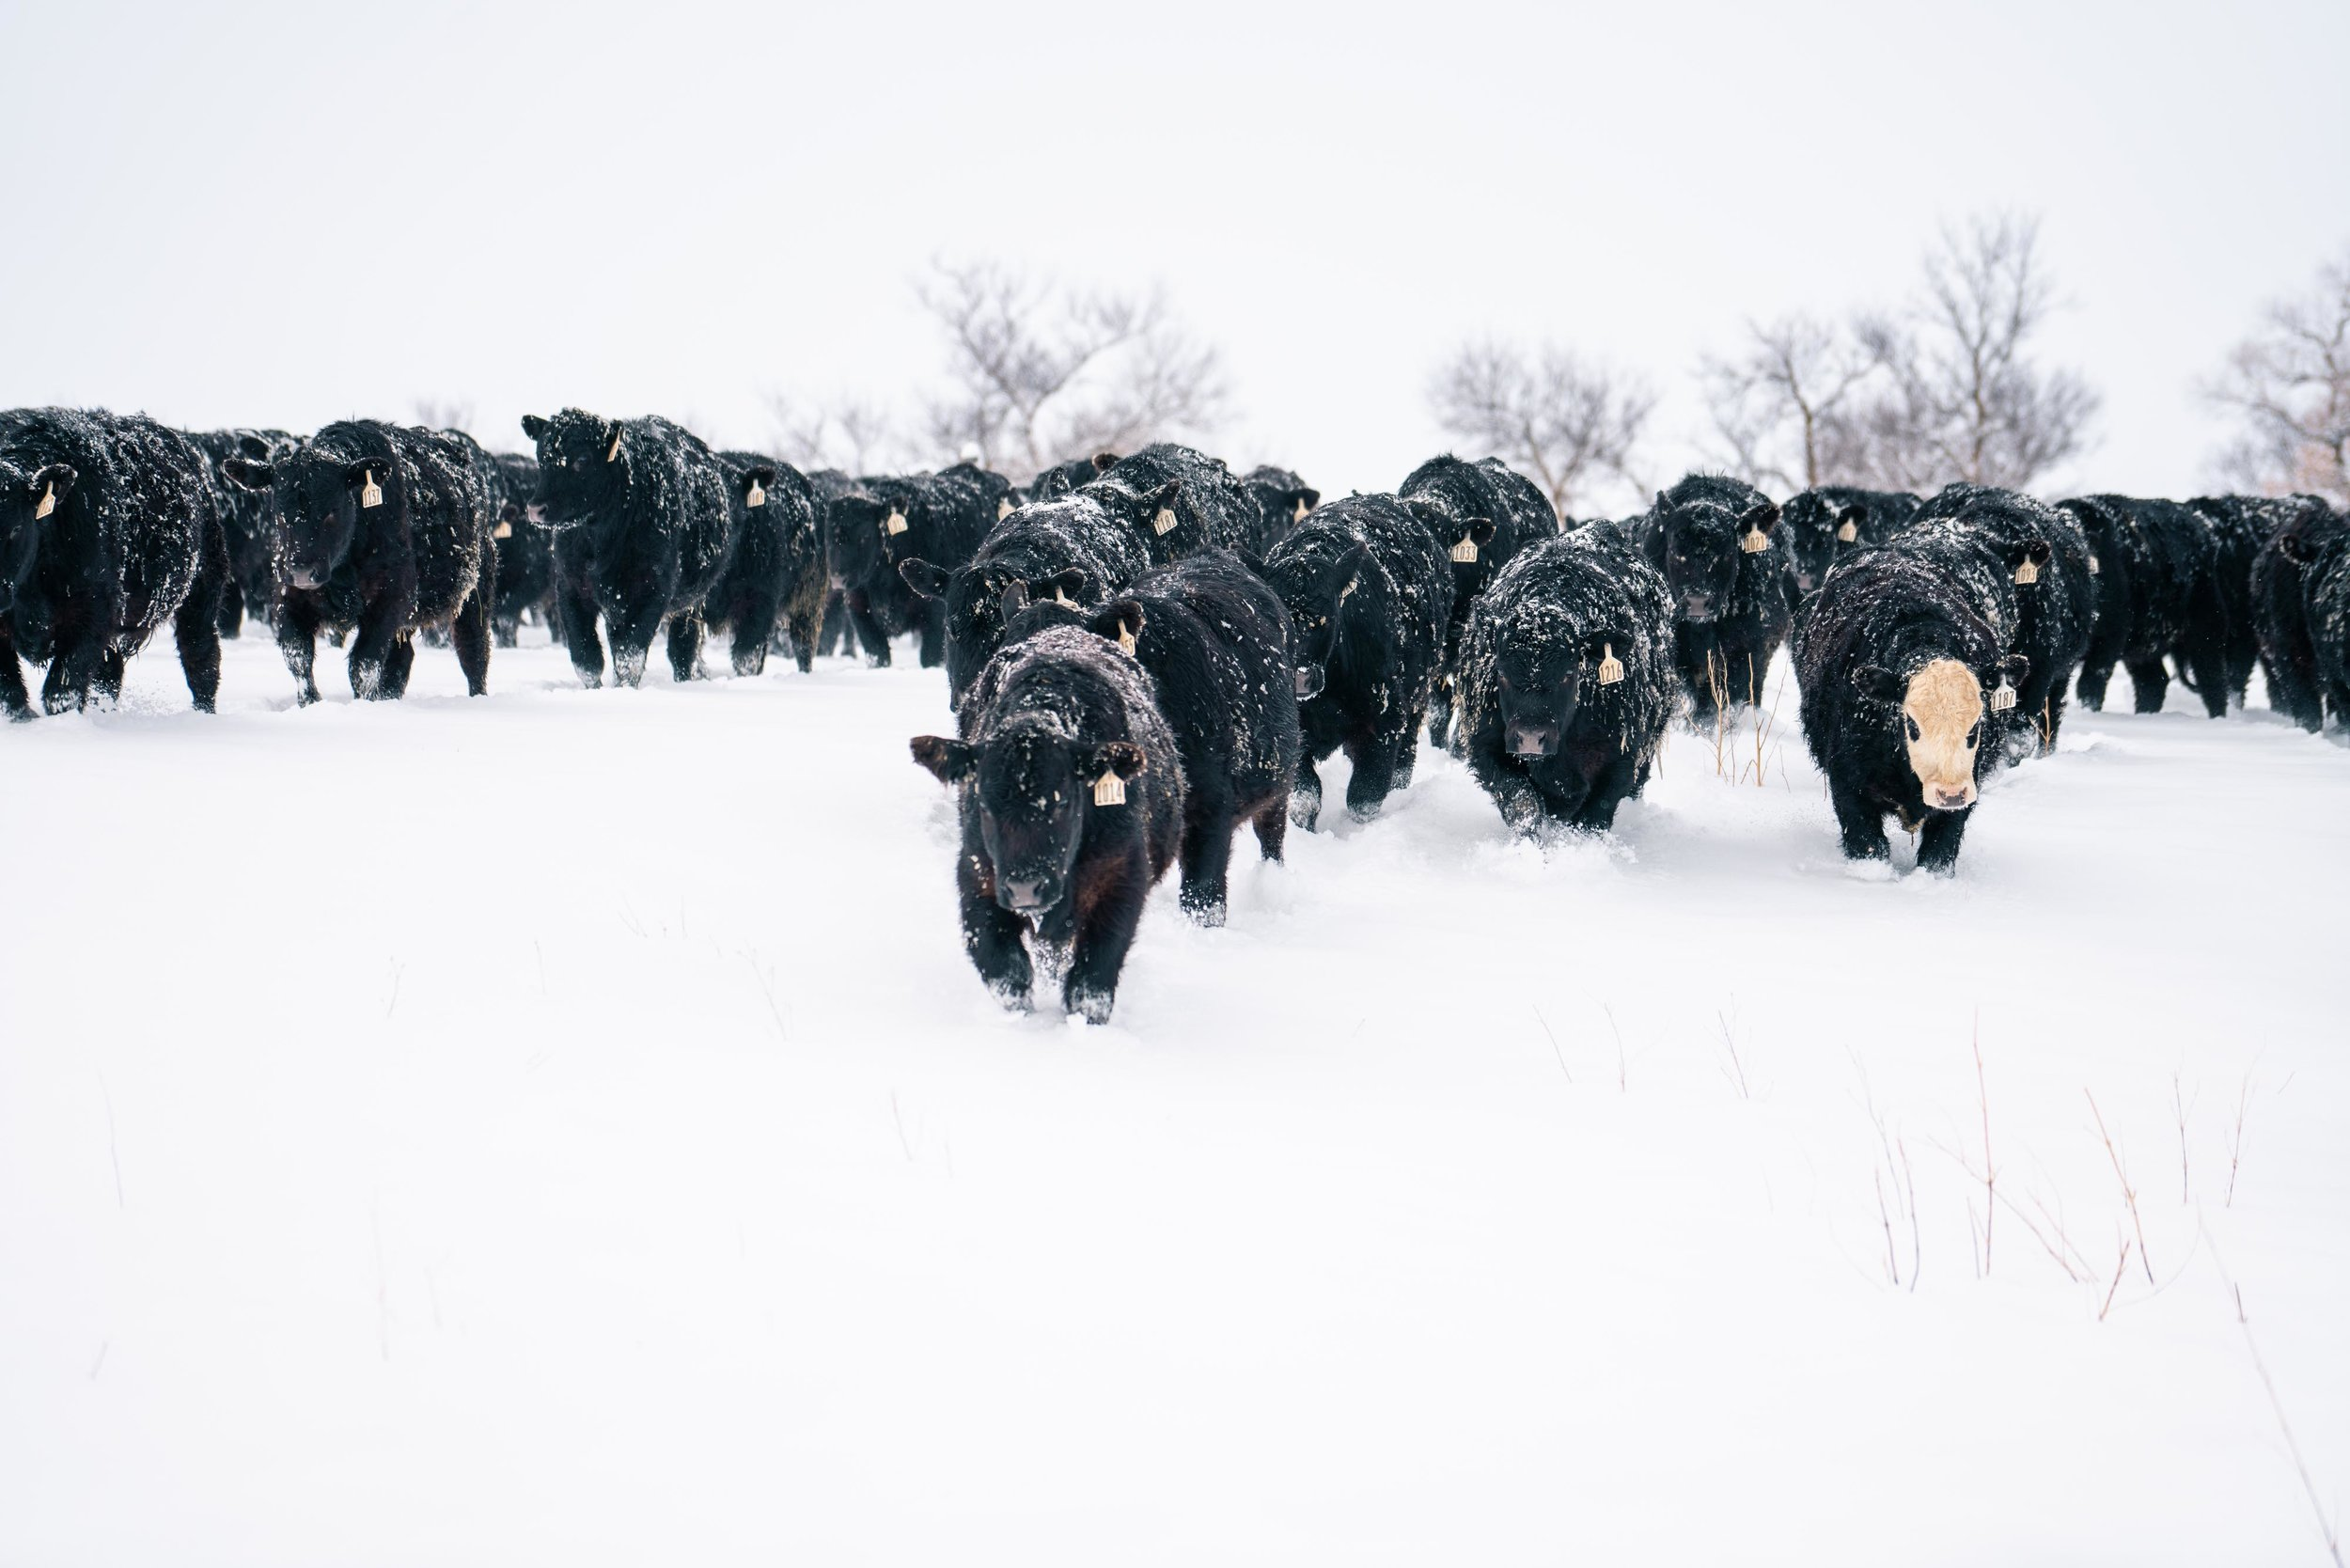 Cows coming to feed during winter in eastern Montana.